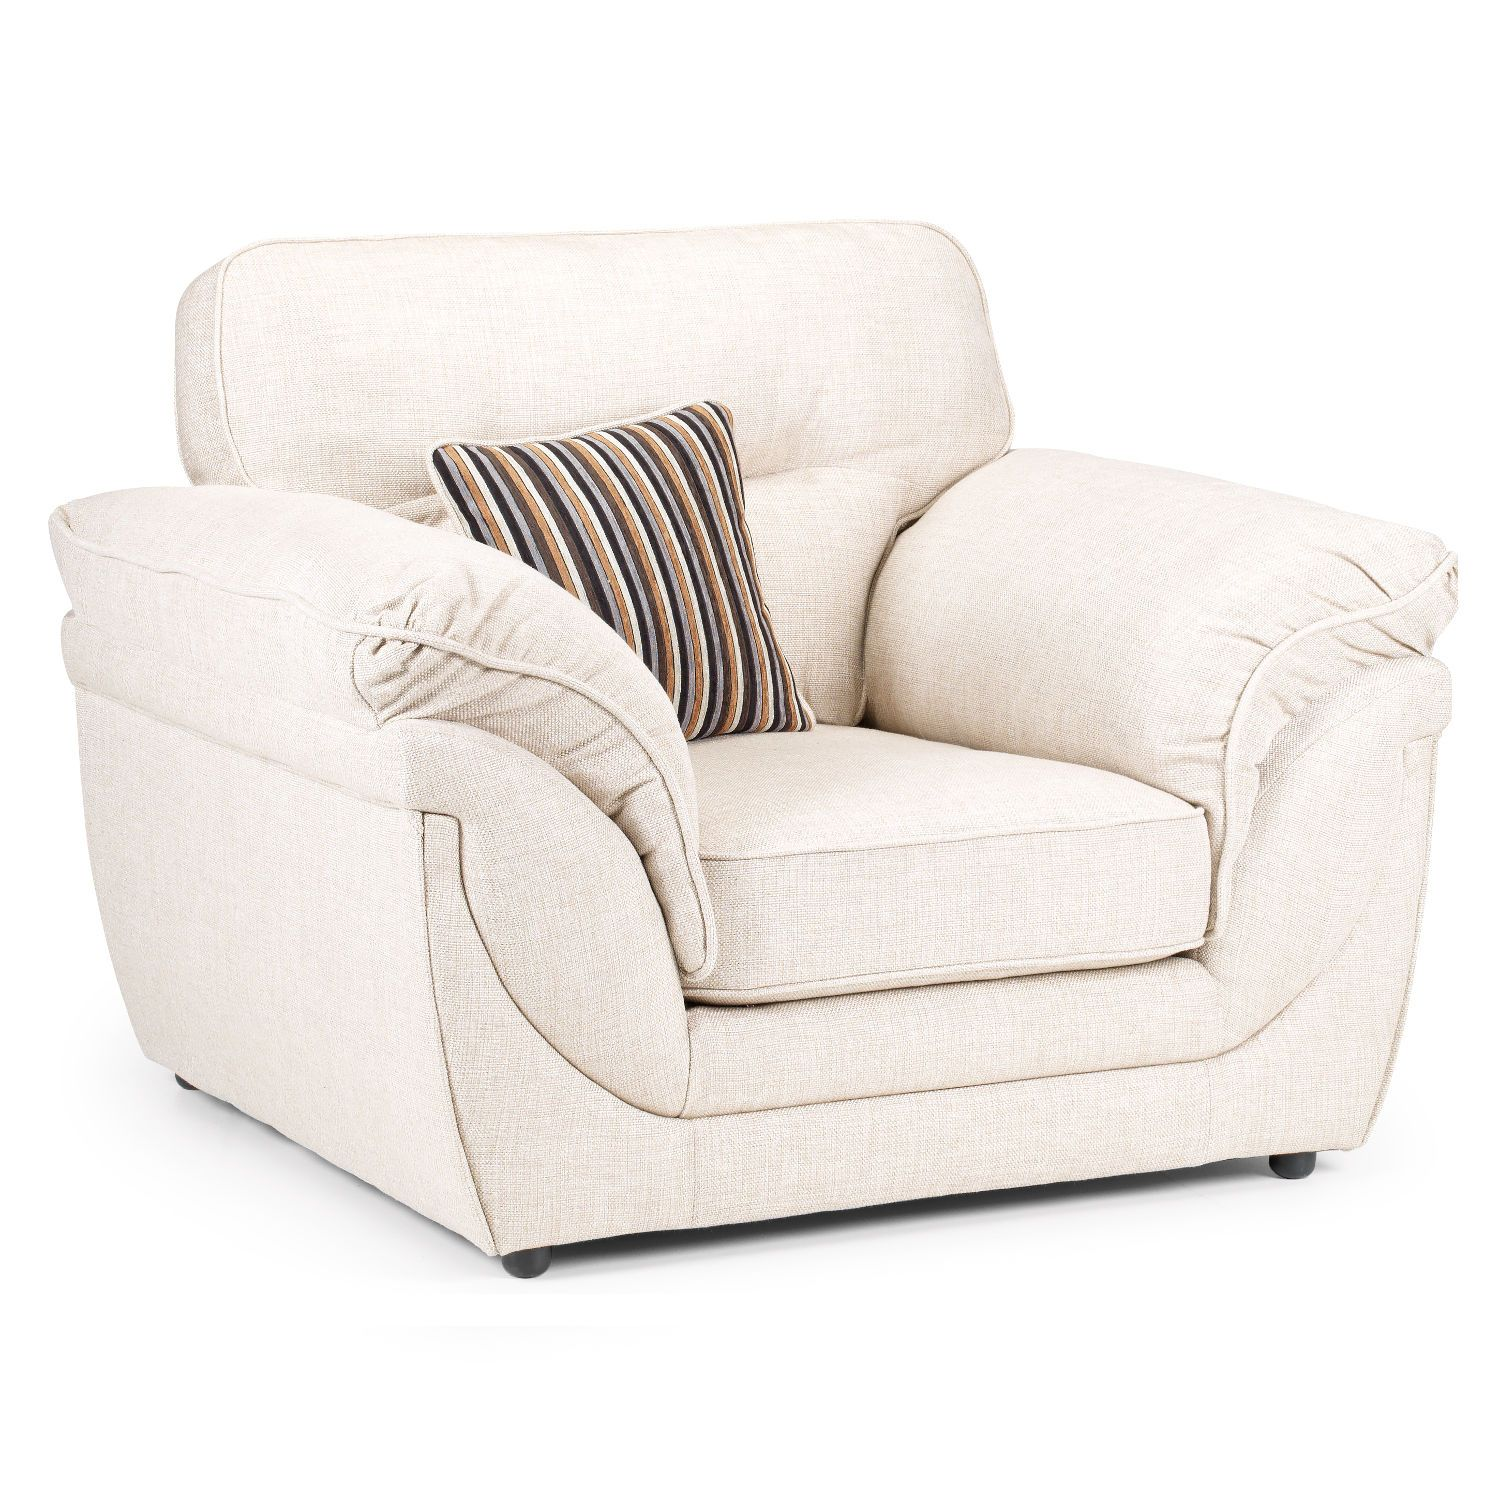 armchairs for sale | armchairs cheap | armchairs | uk ...